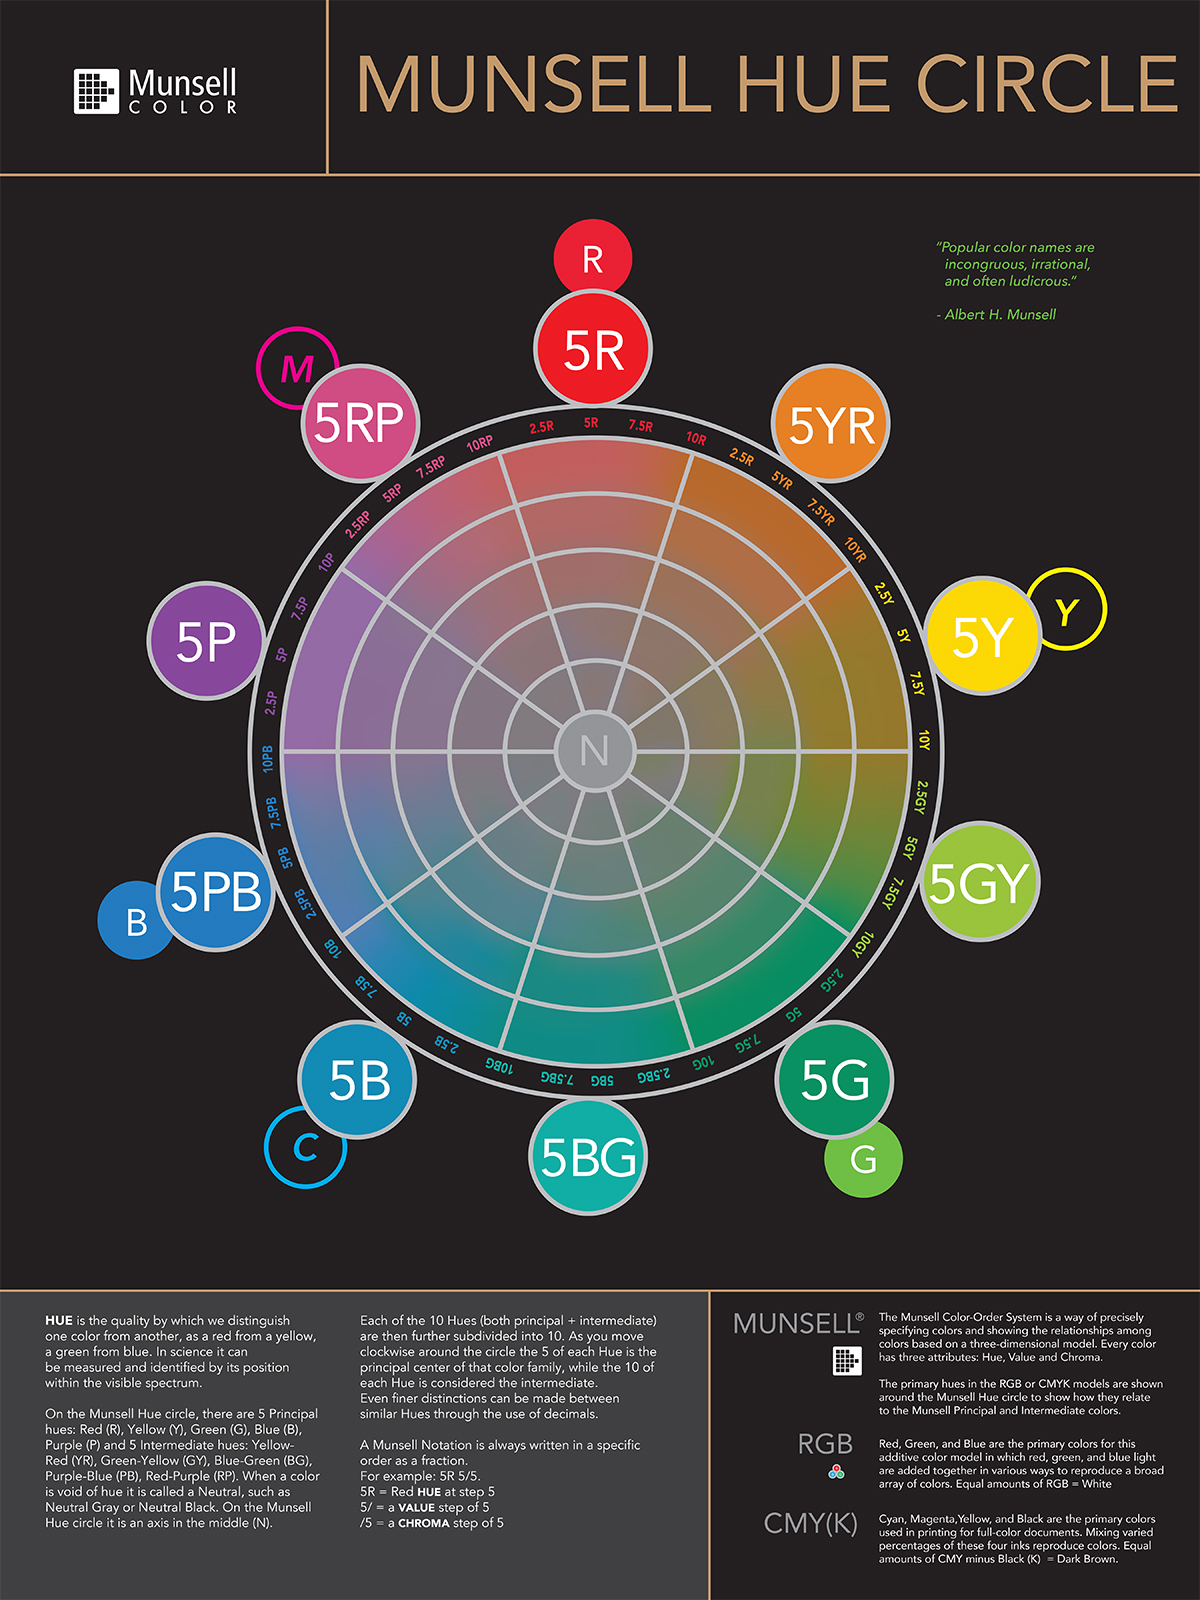 A Poster Featuring The Munsell Hue Circle Diagram Showing Primary And Intermediate Colors